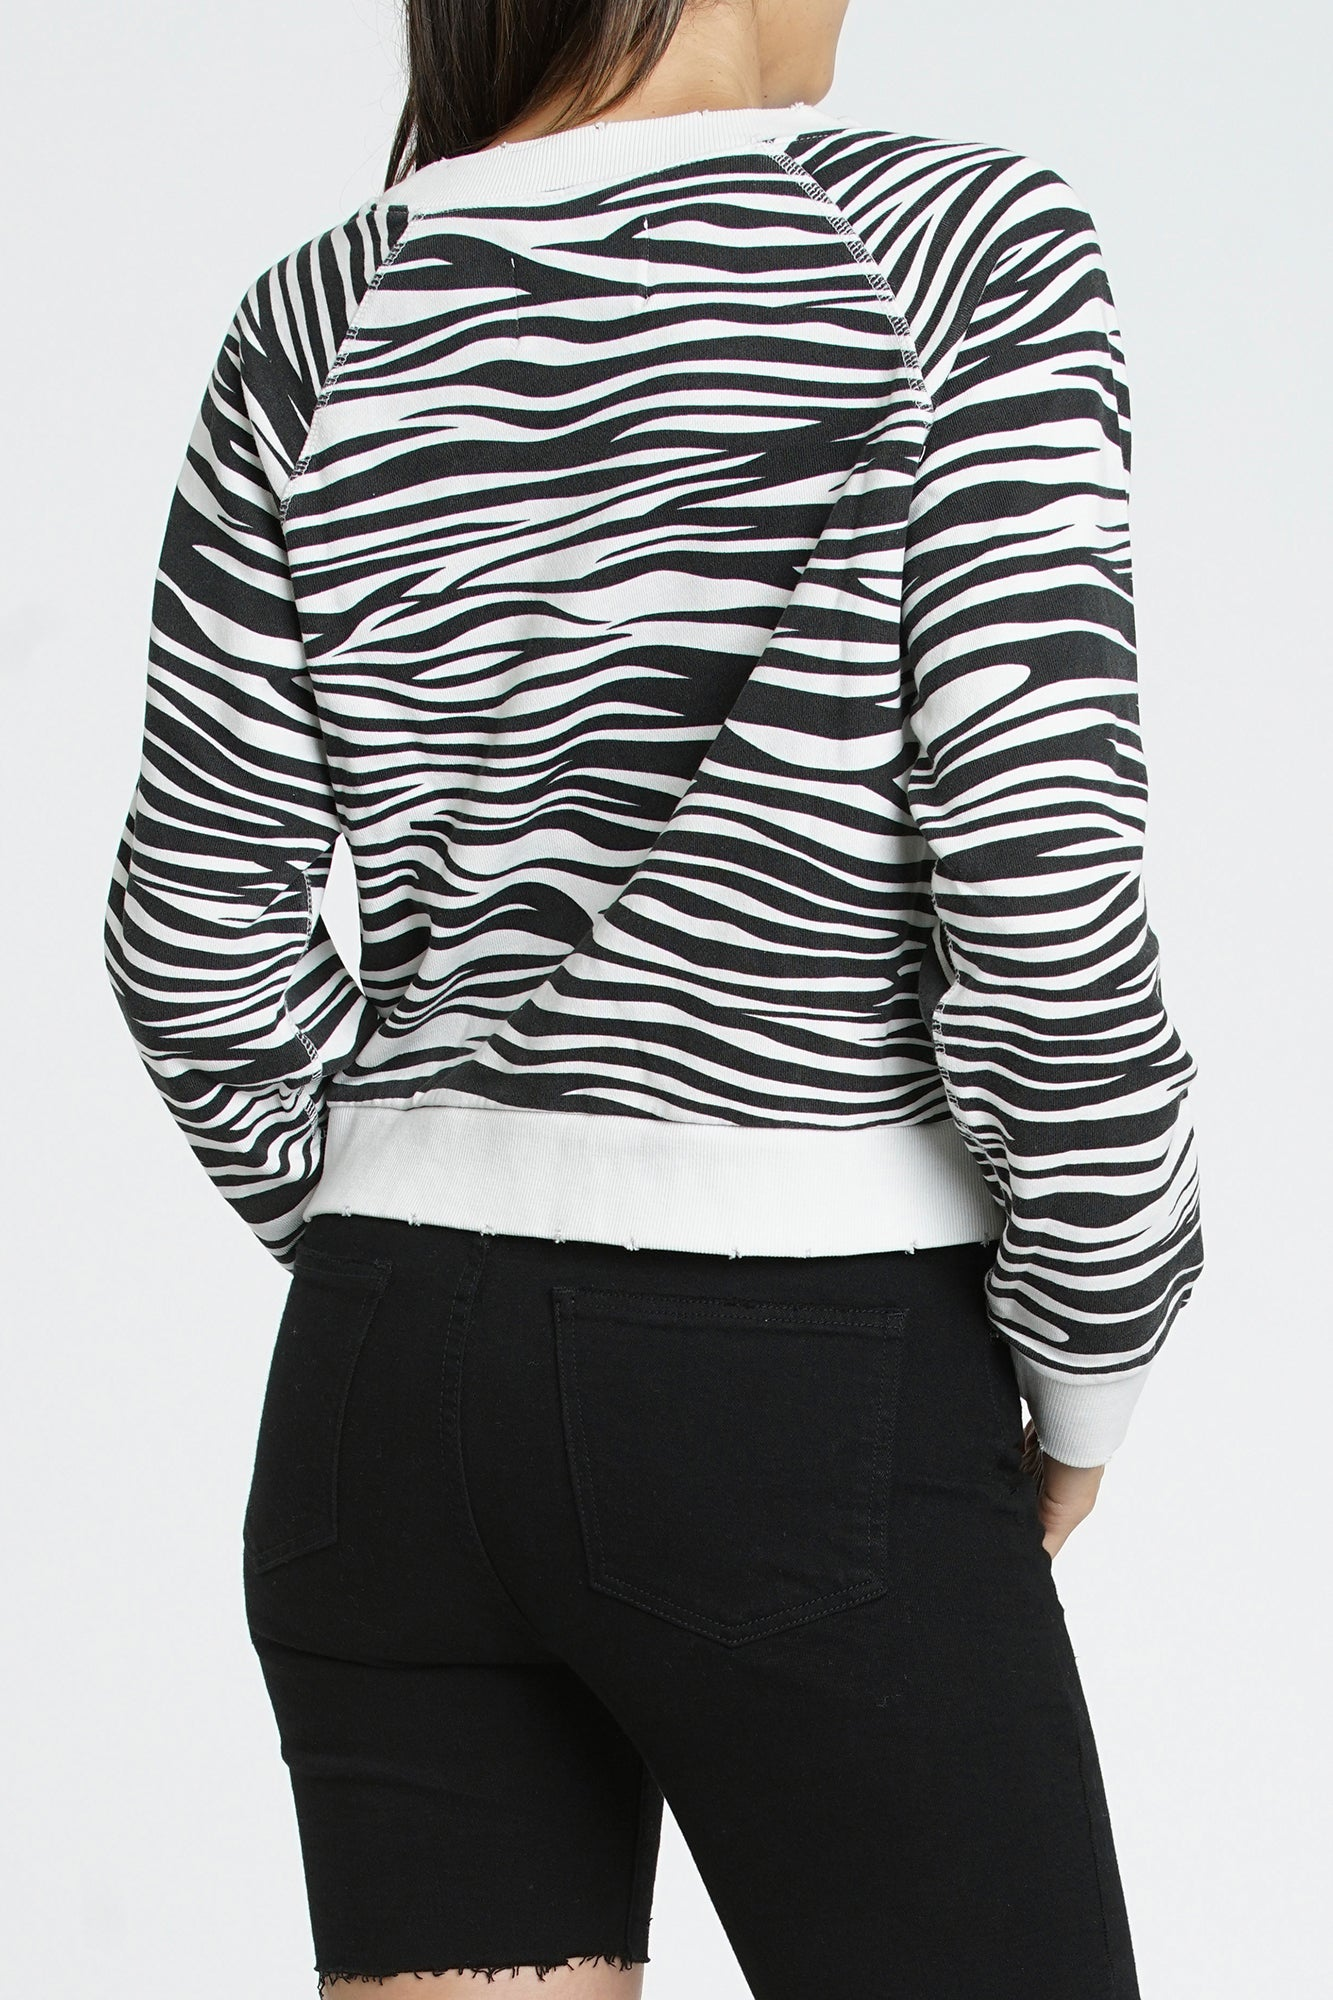 Luana Long Sleeve Crew Neck French Terry Pullover - Zebra